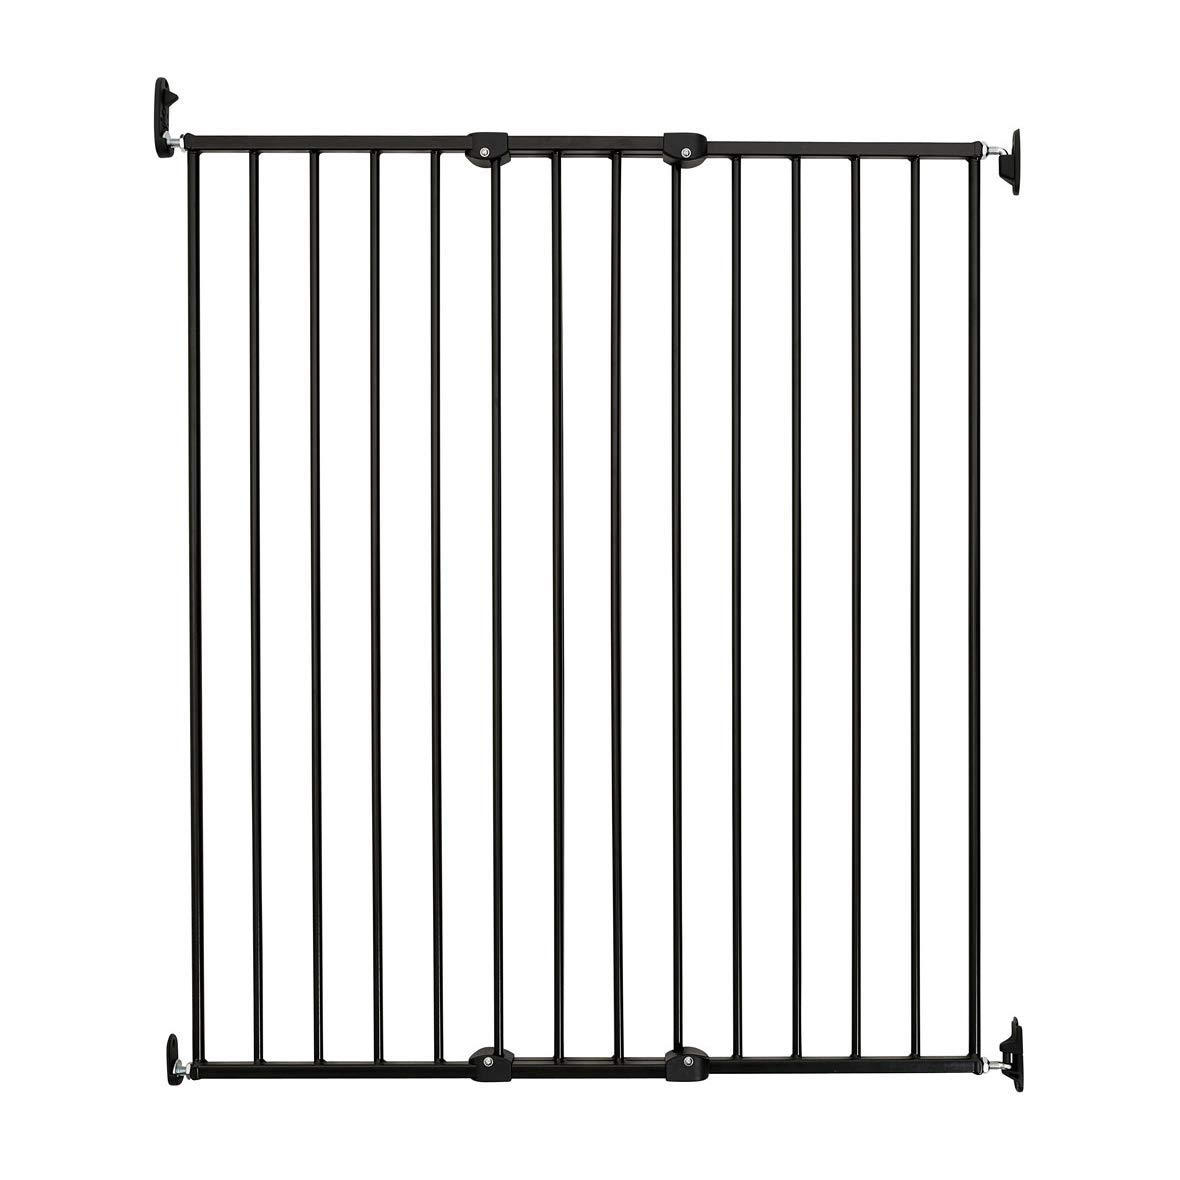 Scandinavian Pet Design Extra Tall 42 Wall Mount Portable Baby Pet Safety Gate for Large and Small Dogs, Black